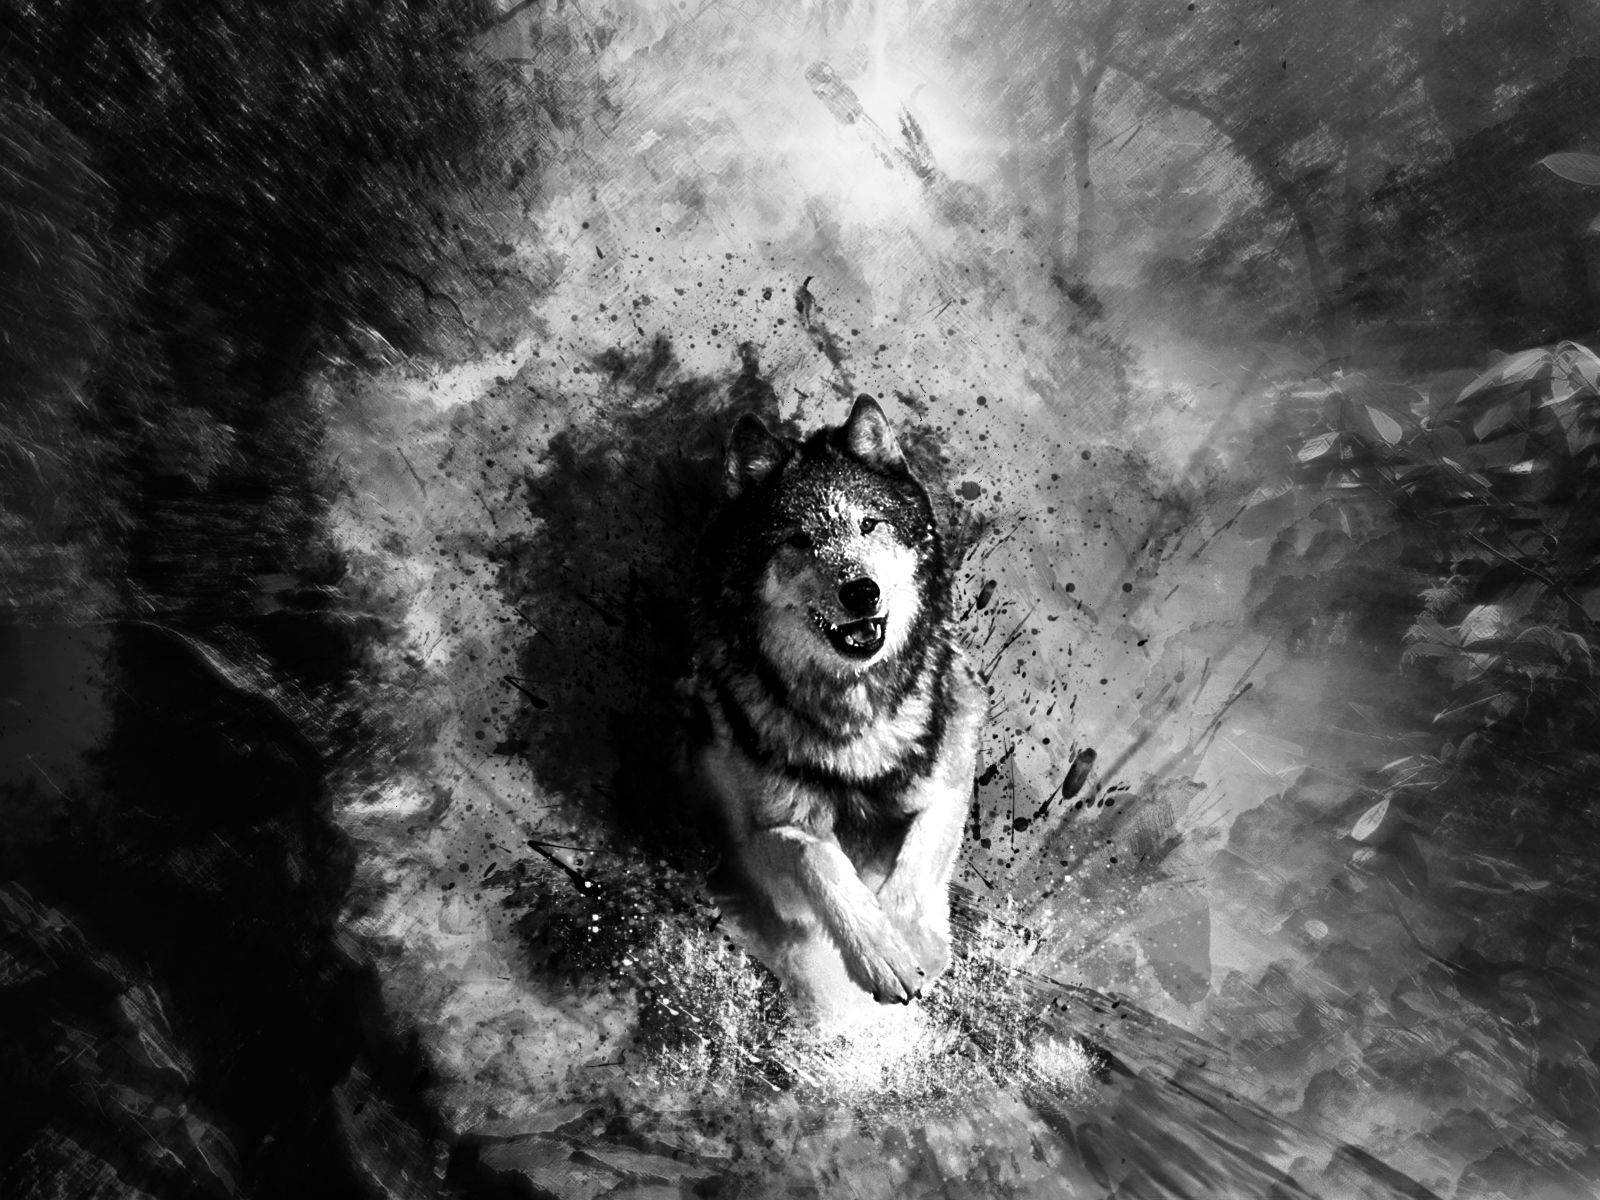 Hd wallpaper wolf - Abstract Art Black And White Wolf Hd Pictures 4 High Definition Wallpapers Hd